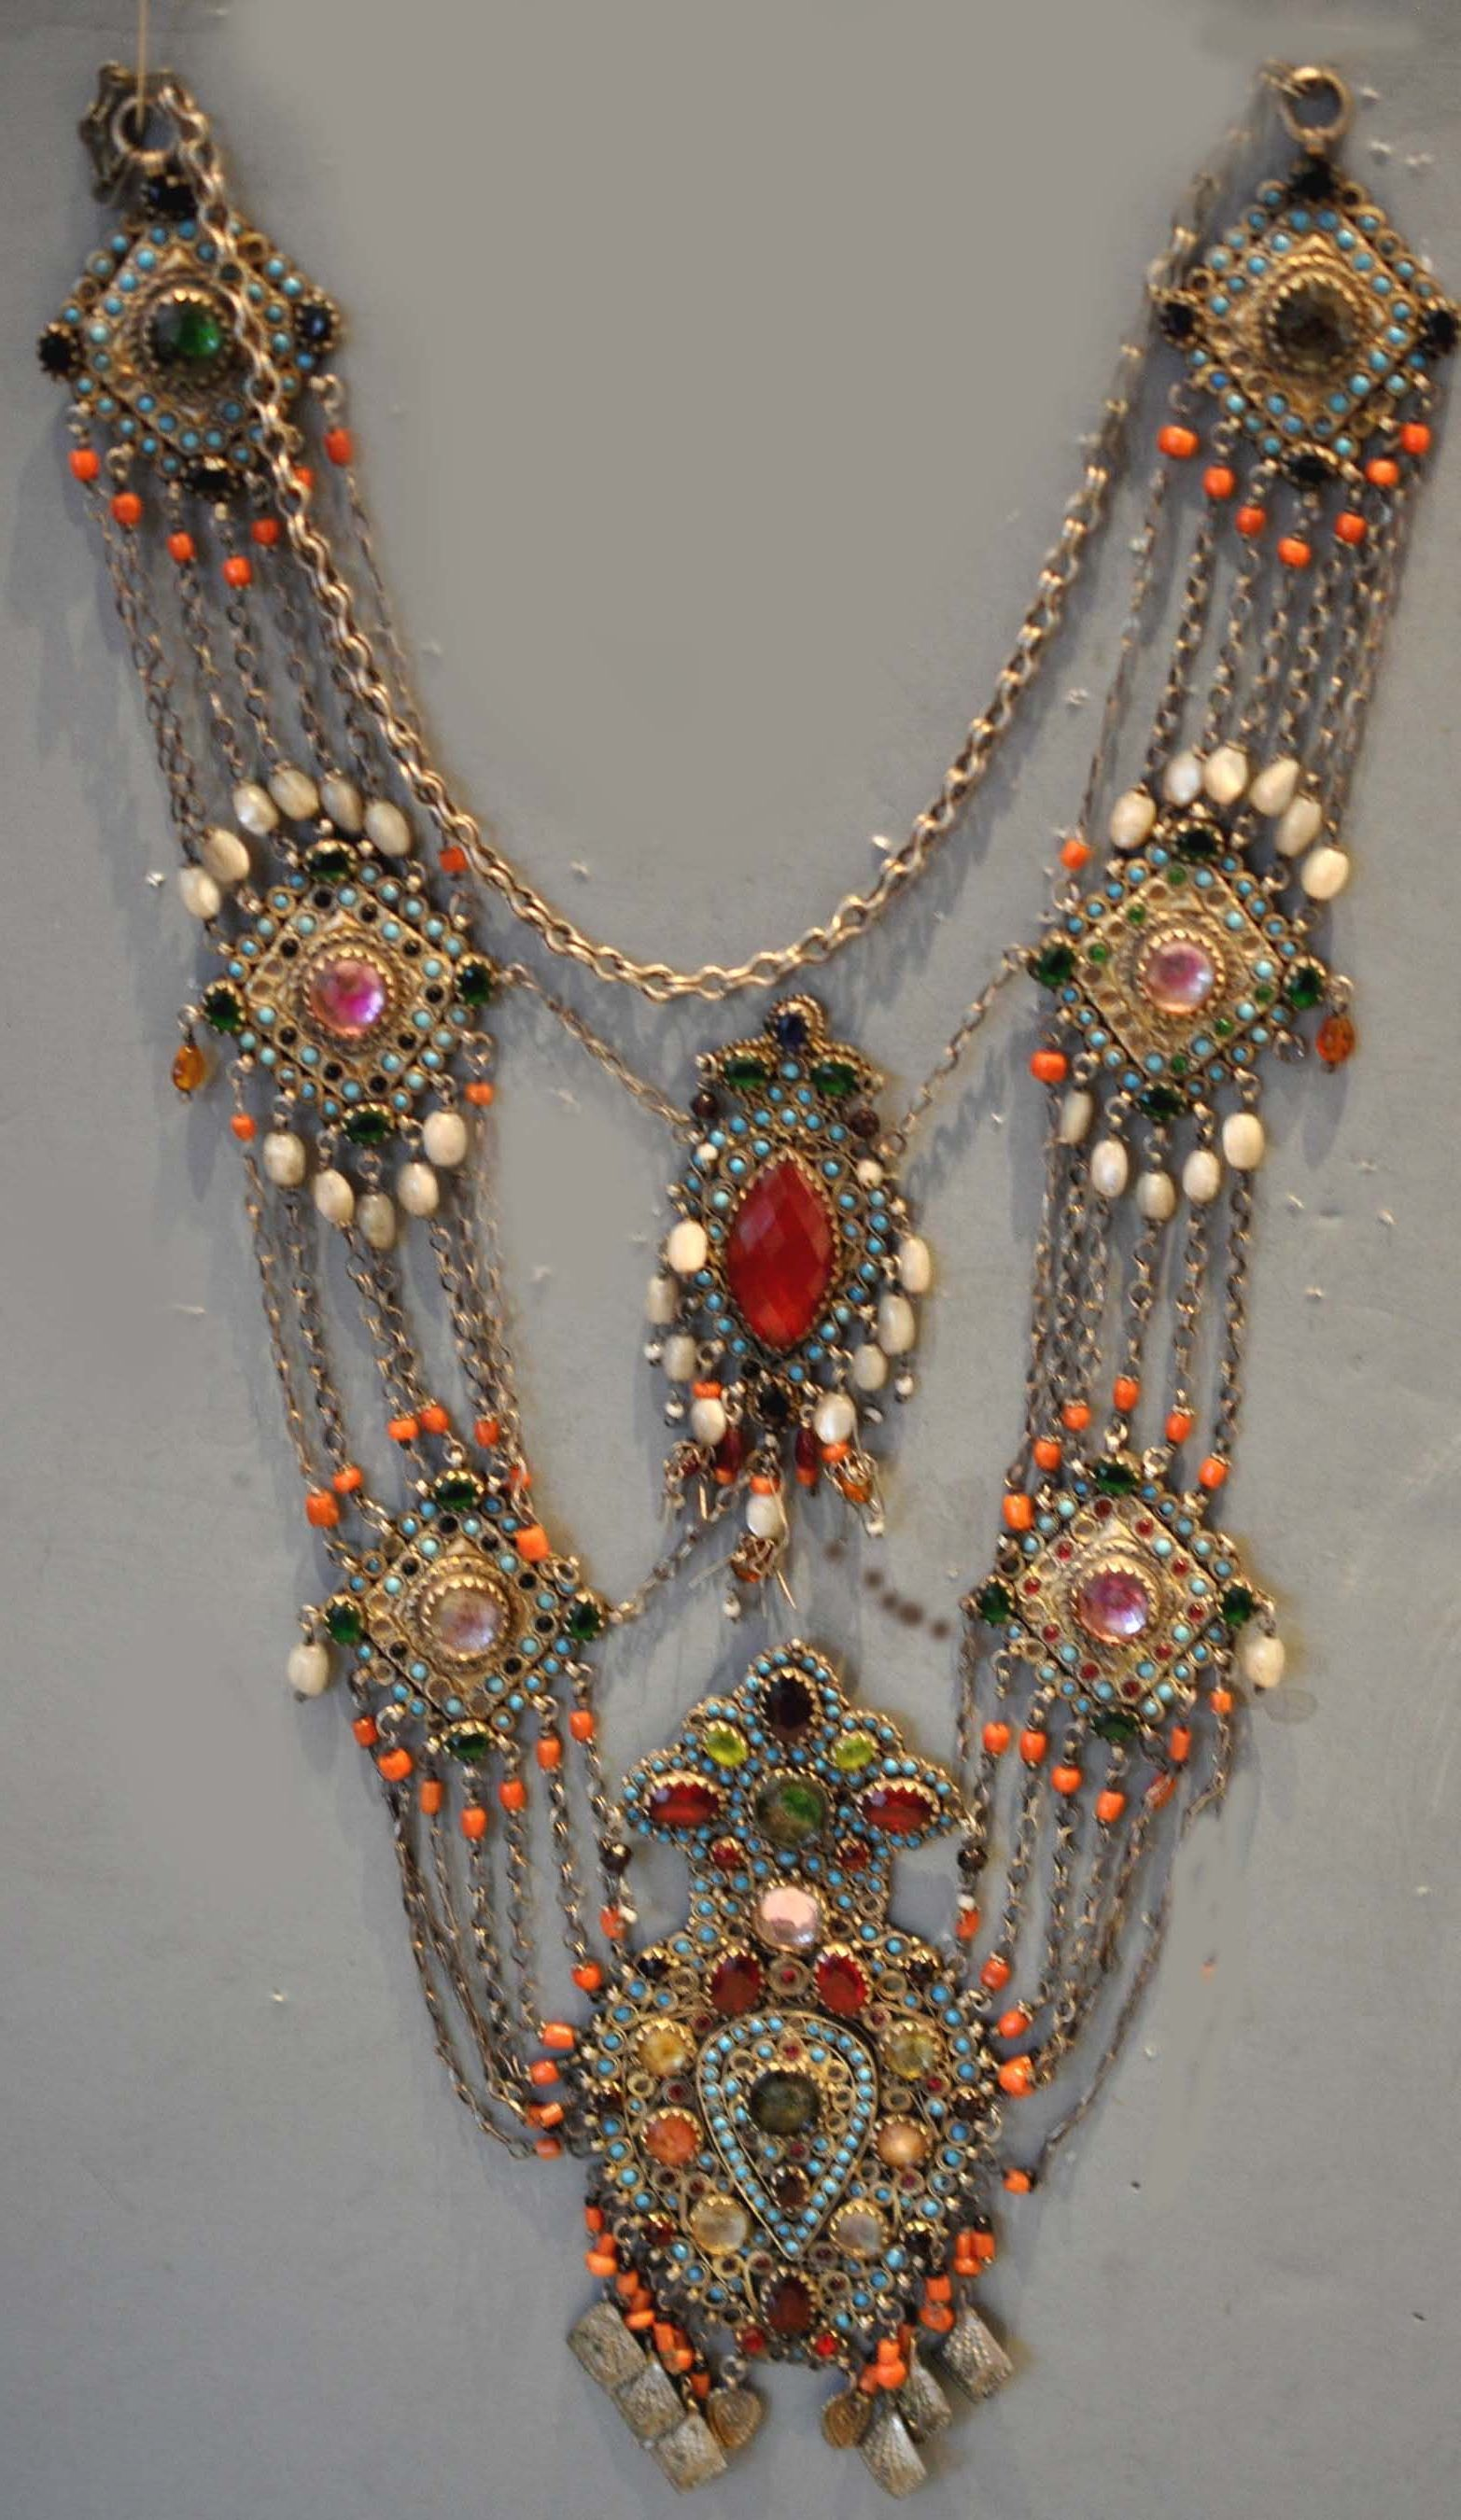 Very large gilt silver necklace with inlaid glass and semi precious stones, Uzbekisan late 19th c (info@singkiang.com)